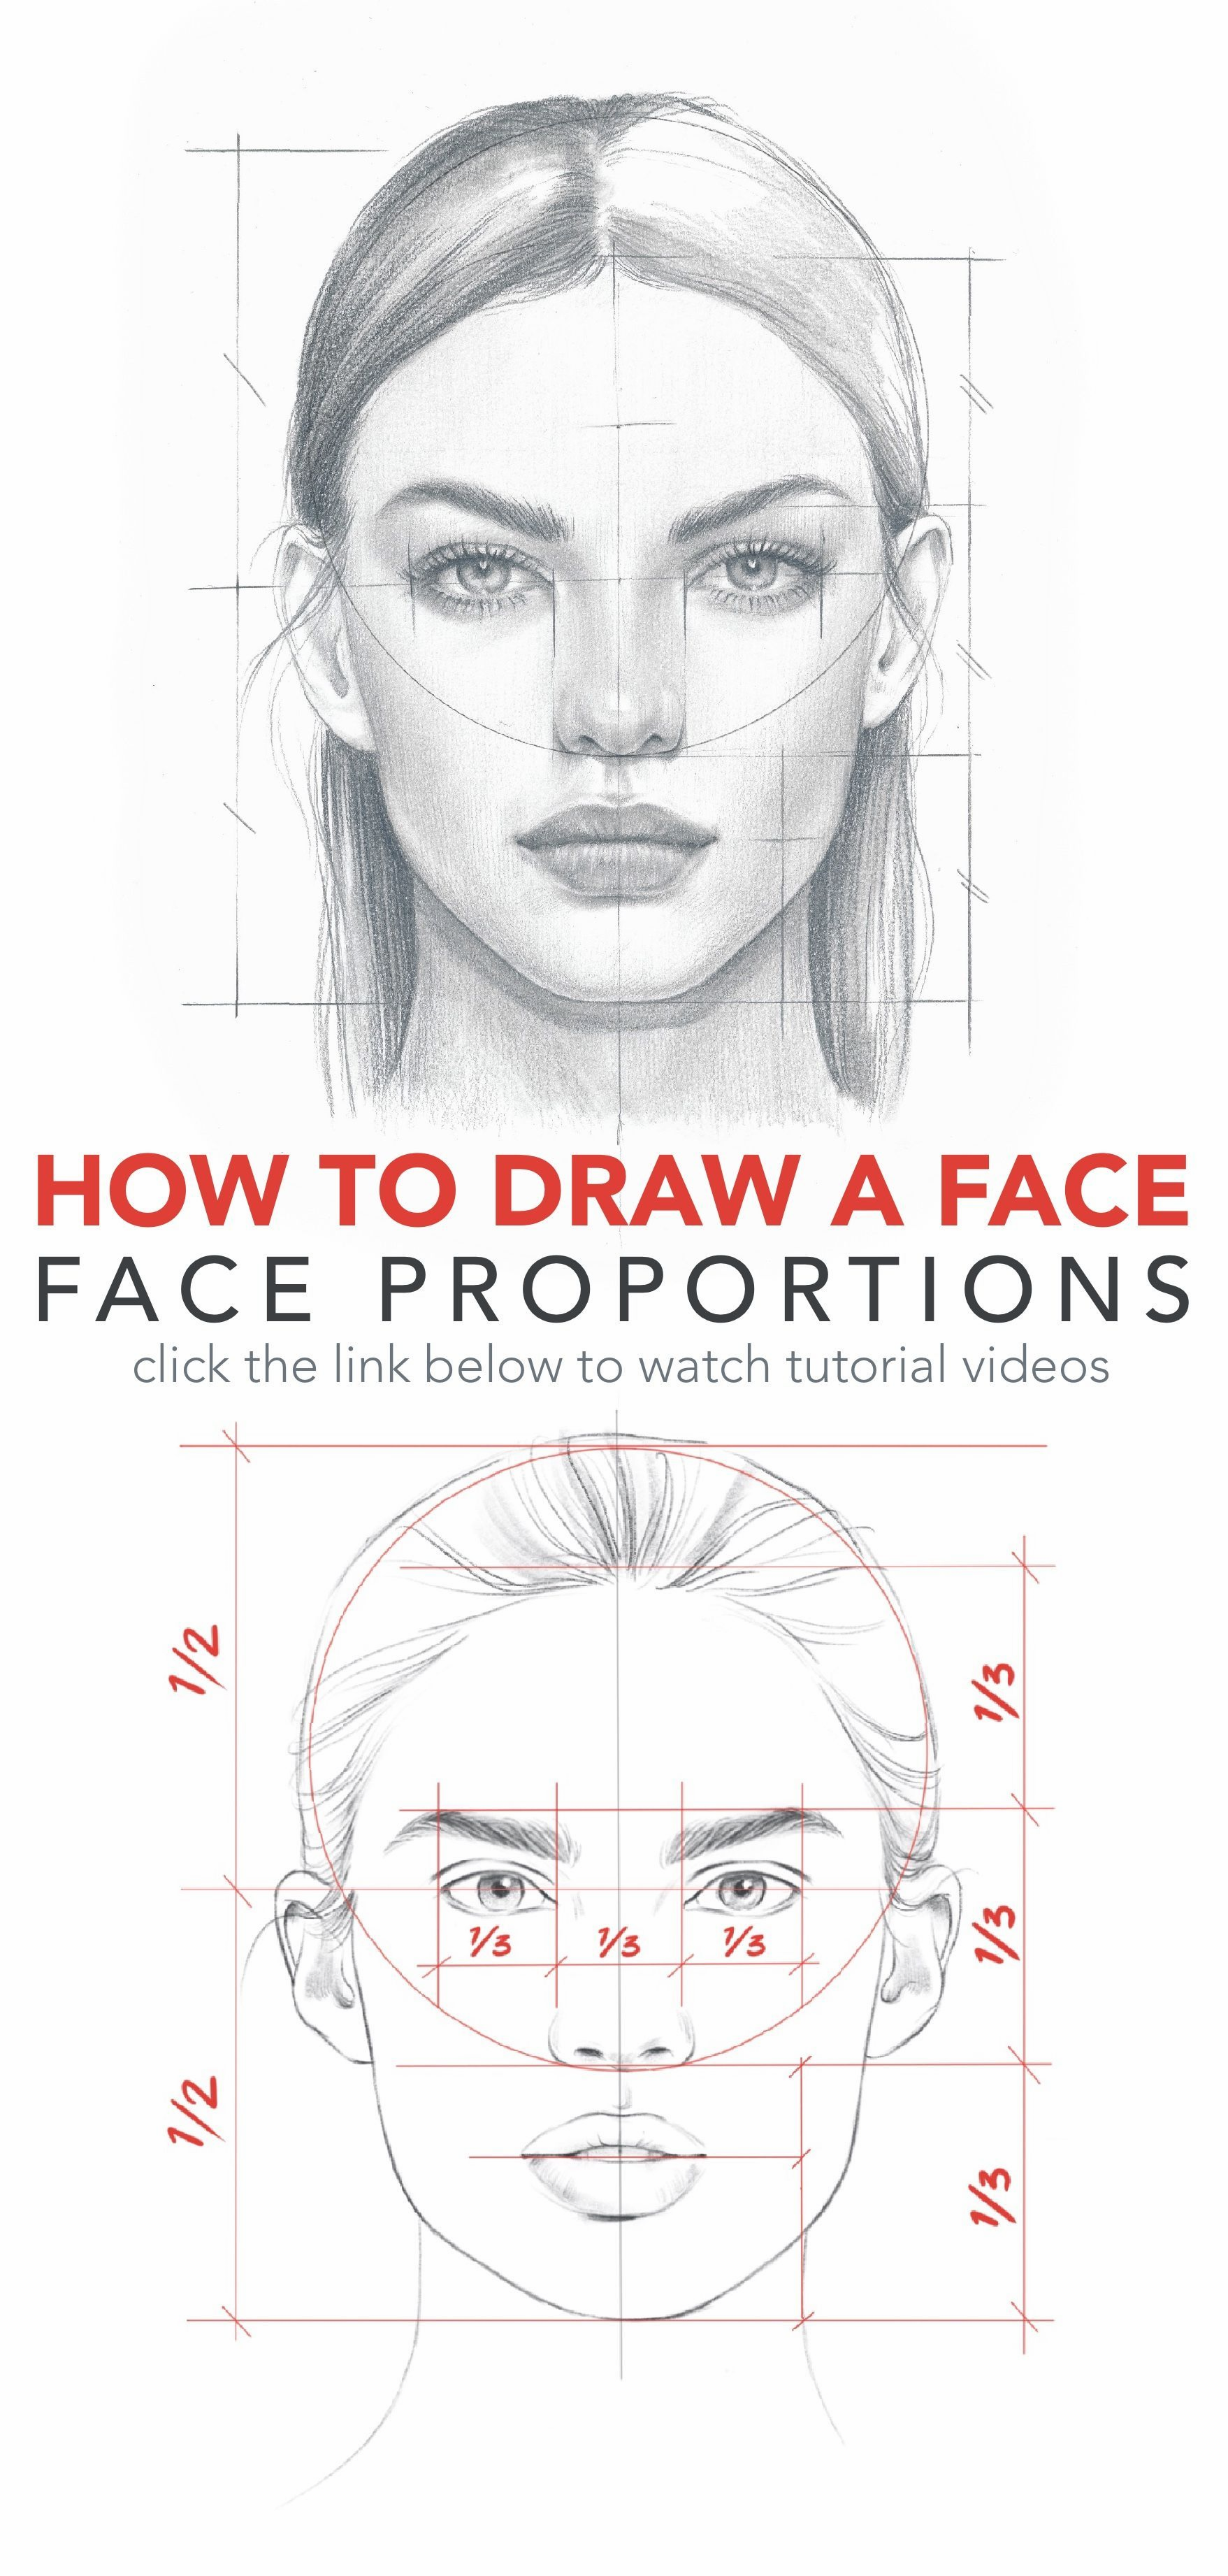 How To Attract A Face The Face Proportions In 2020 Face Proportions Drawing Face Proportions Portrait Drawing